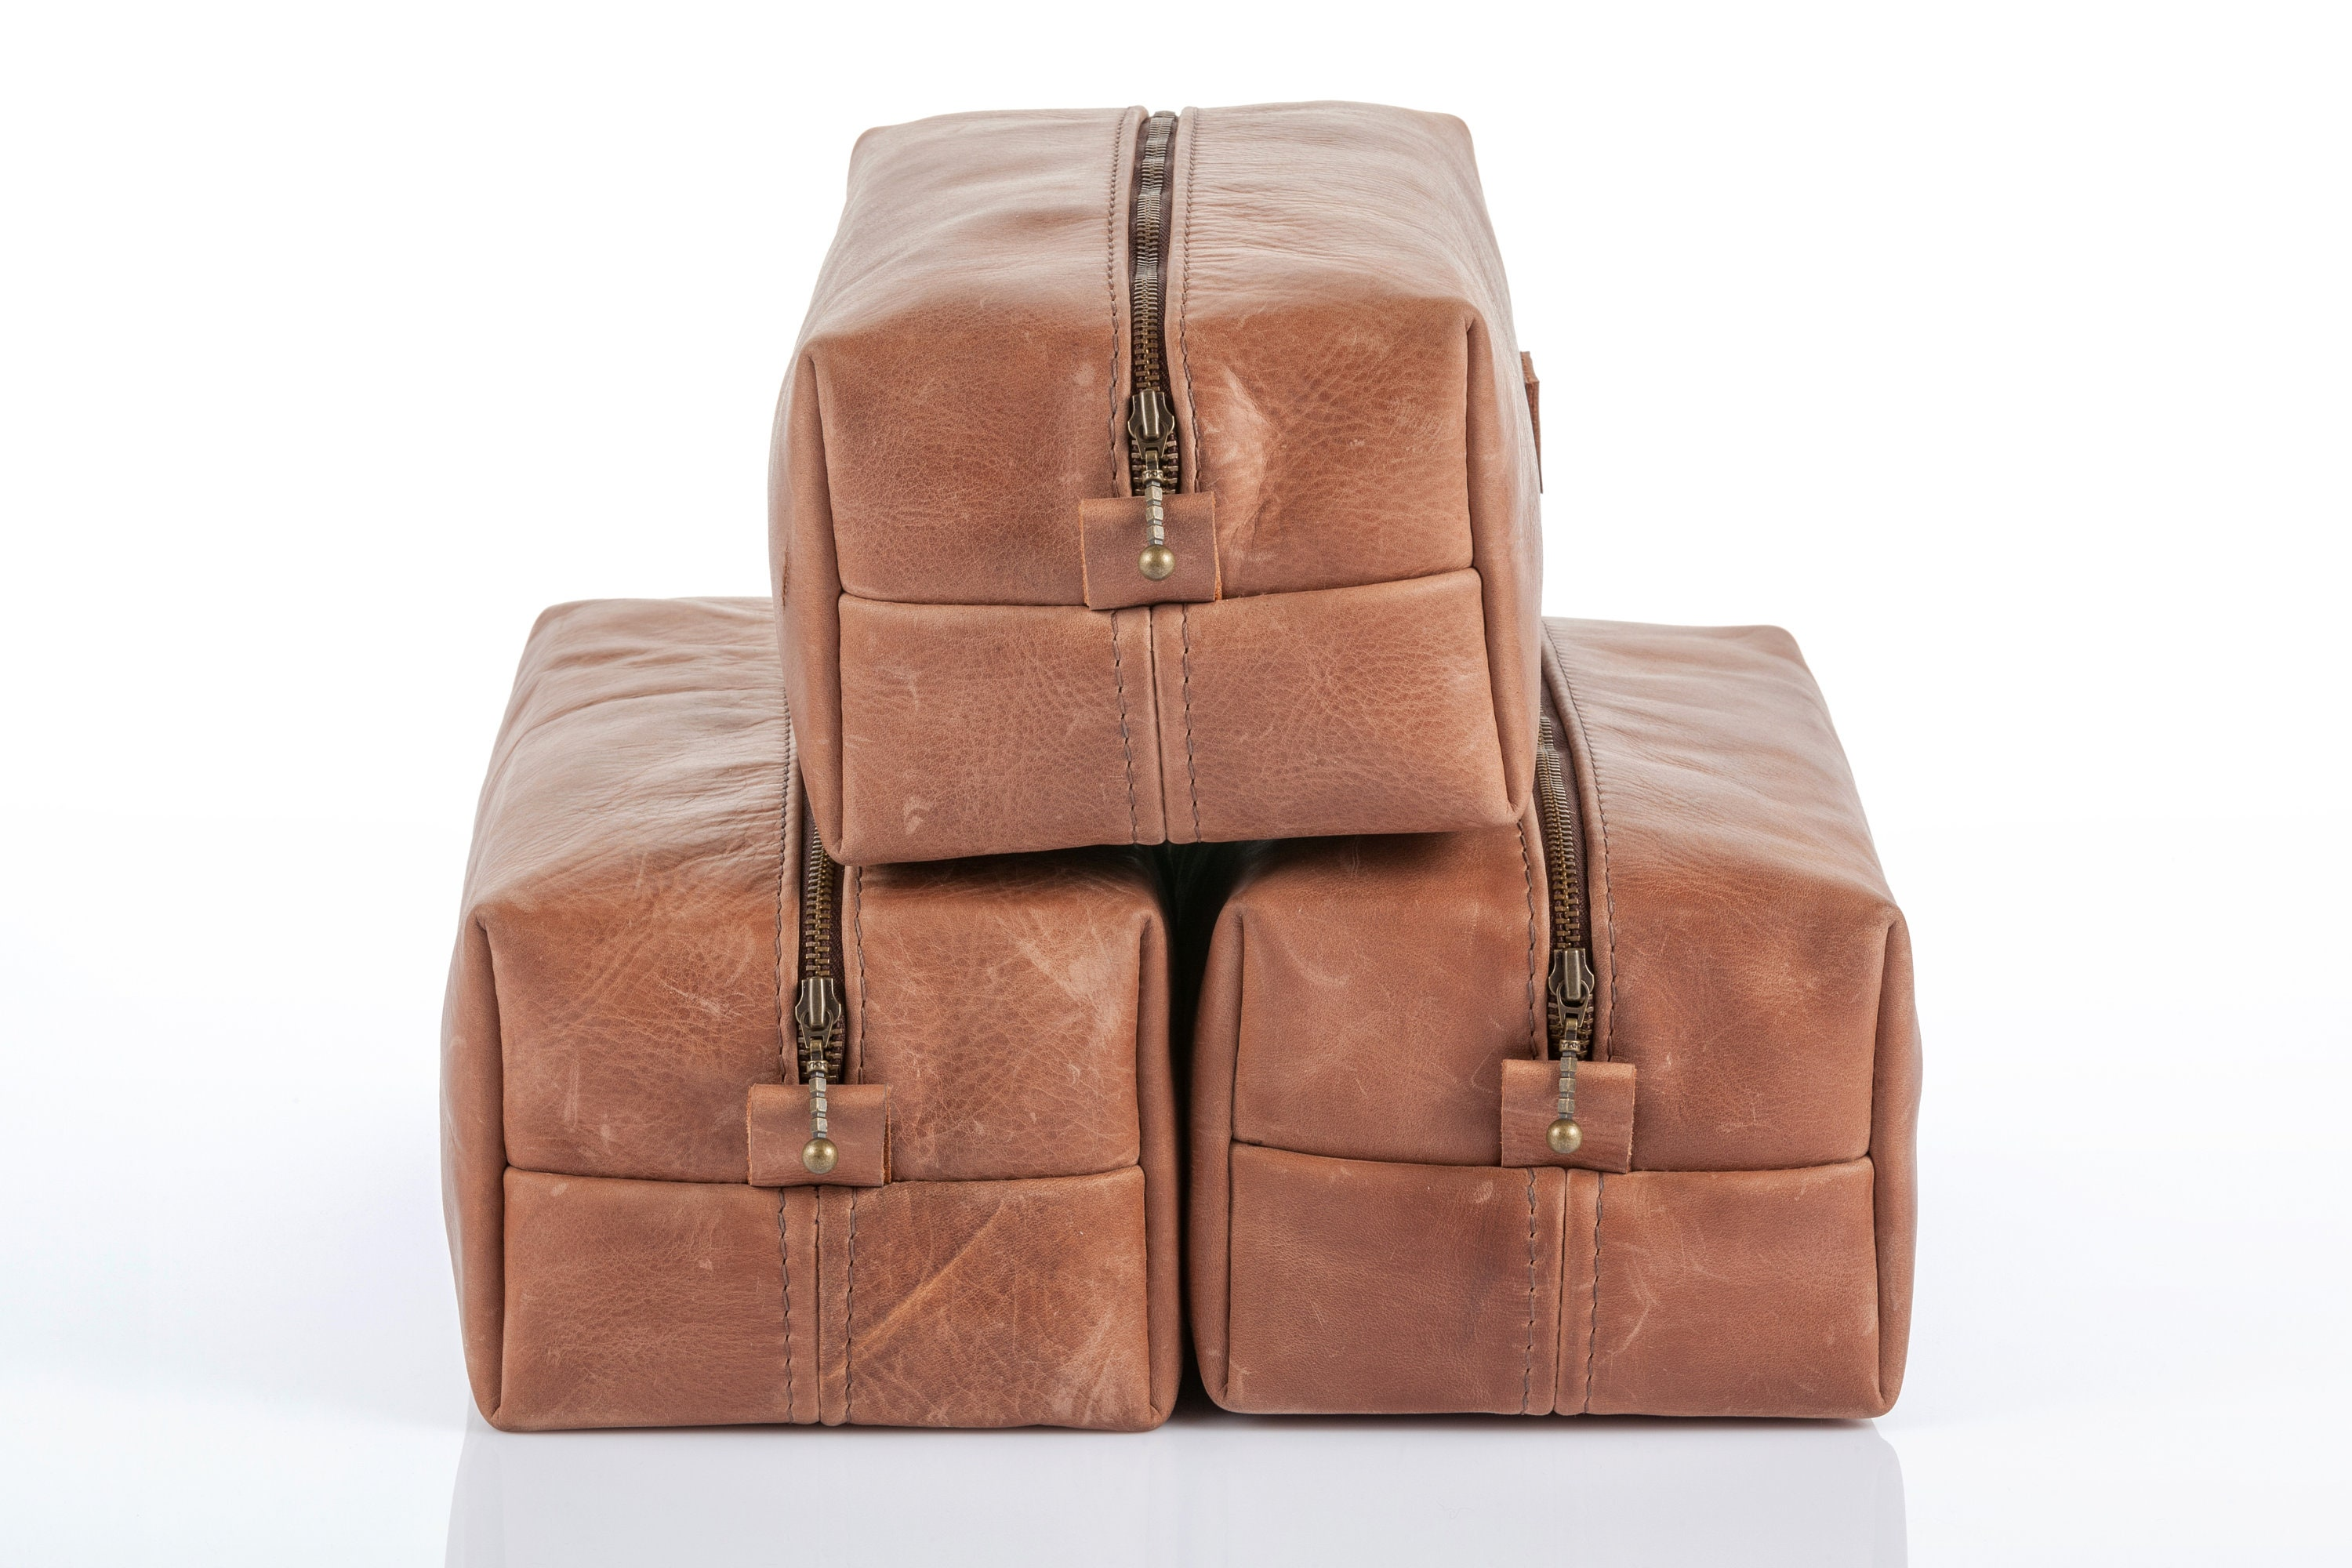 493decfb7888 SET of 12 Dopp kits Personalized Leater Toiletry bags